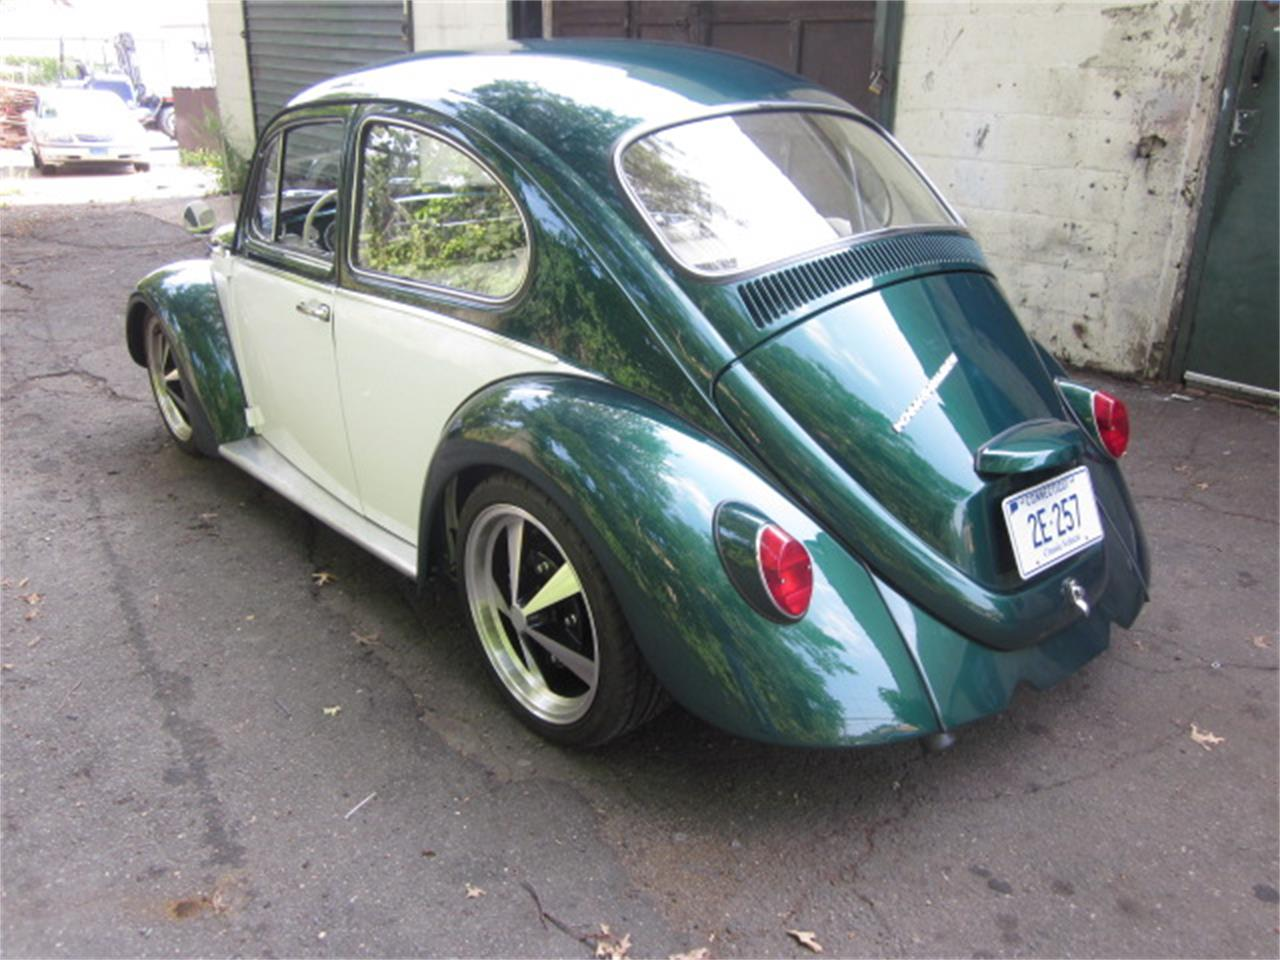 1967 Volkswagen Beetle for sale in Stratford, CT – photo 3